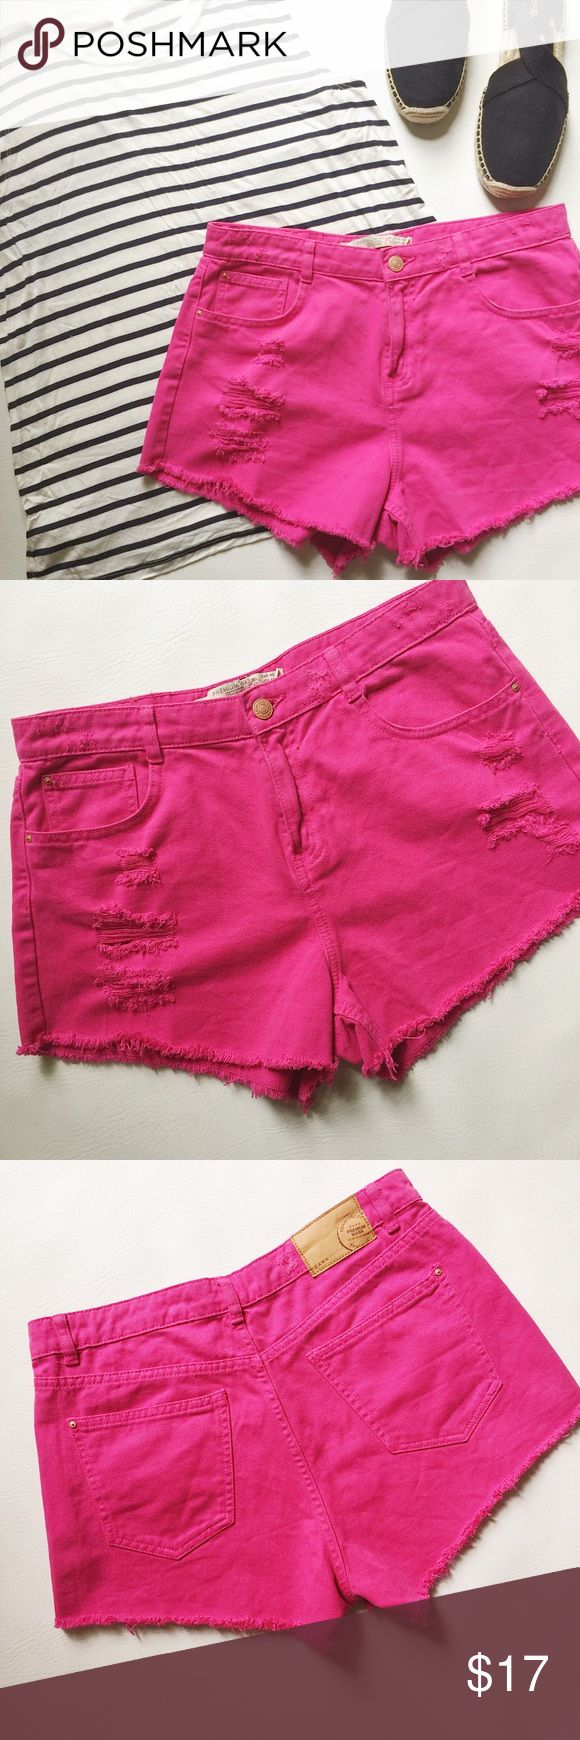 "Zara Ripped Denim Shorts Zara Ripped Denim Shorts in pink featuring factory distressing. Bright, cheerful color! Pre-loved but in excellent condition. No holes, stains or damage. Last 2 pics stock photos, used to show fit and true color. Measurements laying flat: Waist (across): 15.5"" Hips: 19.5"" Inseam: 2"" Rise: 10.5"" Zara Shorts"